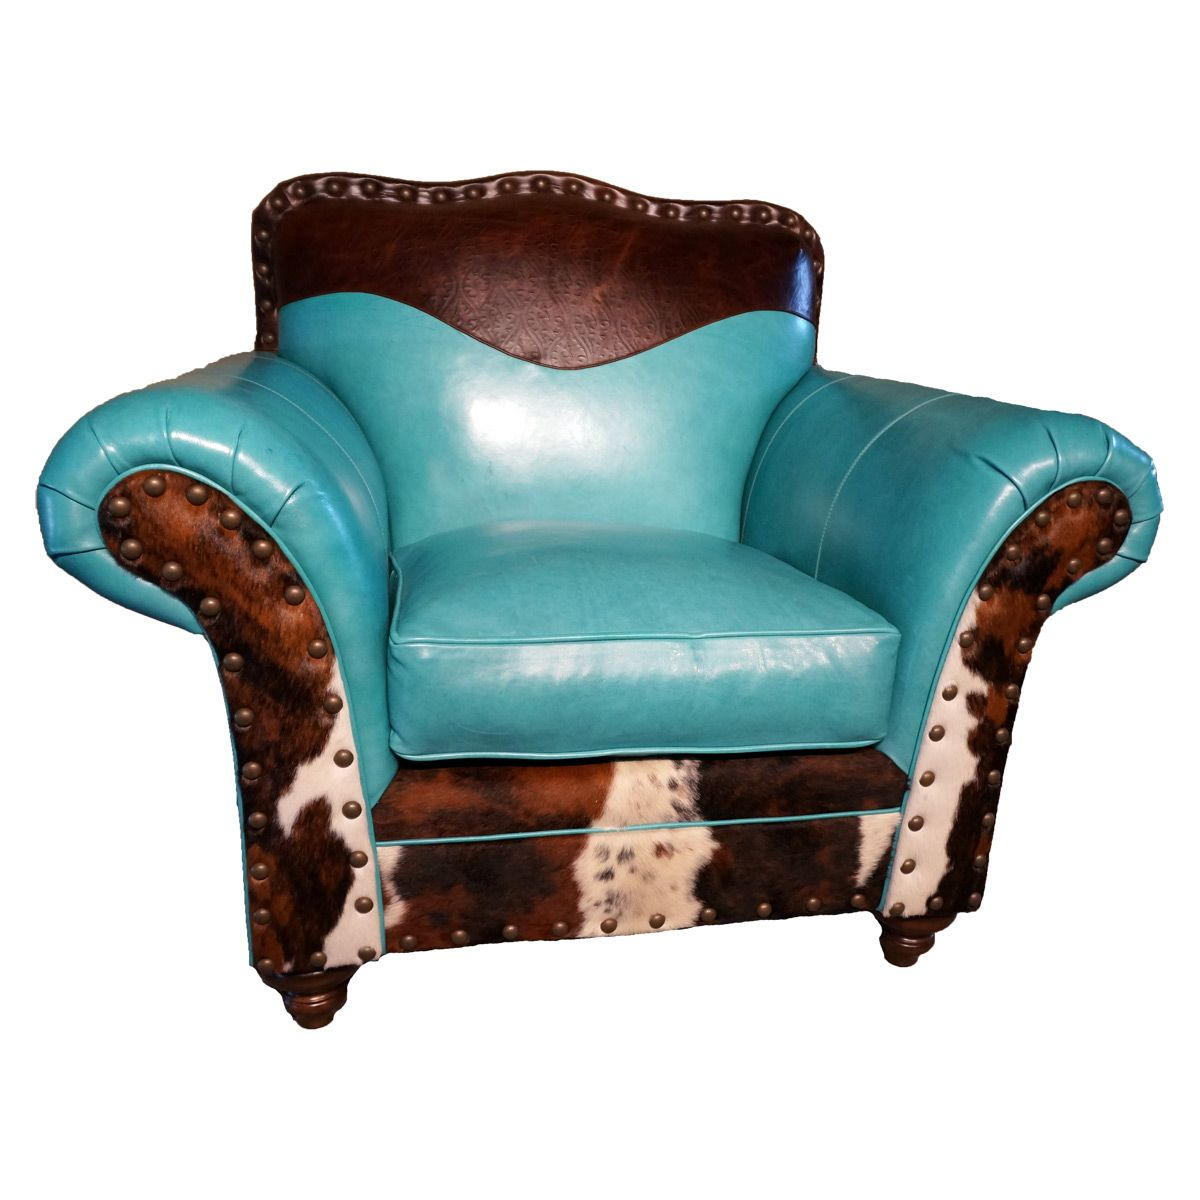 turquoise chairs leather wedding chair covers for hire glasgow cowhide club heavenly home decor